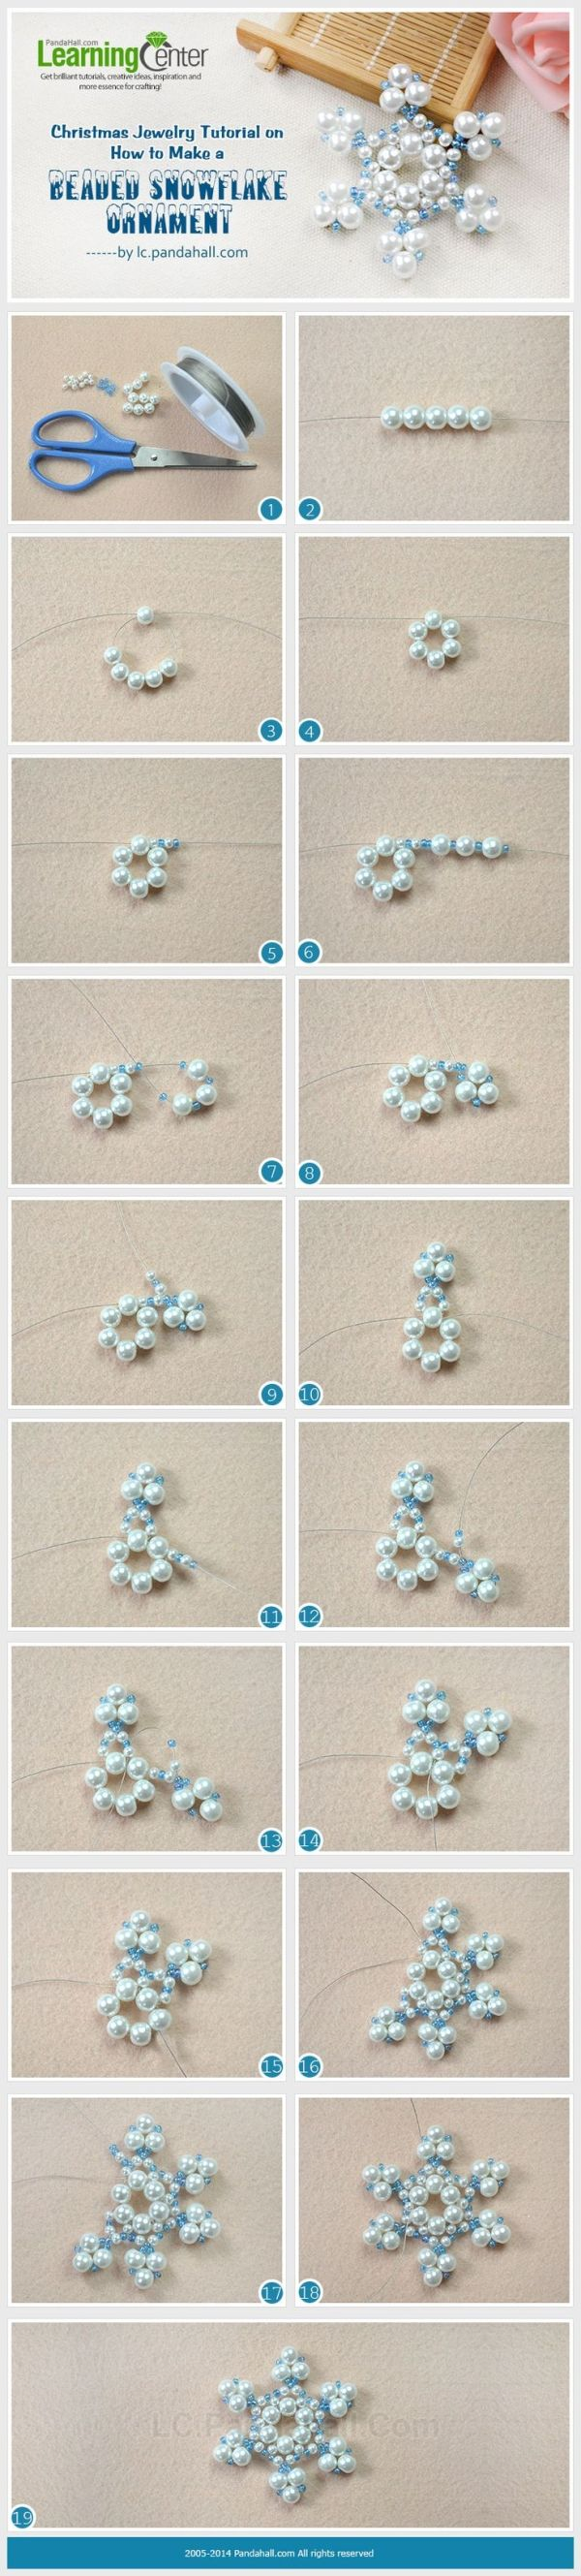 Christmas Jewelry Tutorial on How to Make a Beaded Snowflake Ornament by Violetka